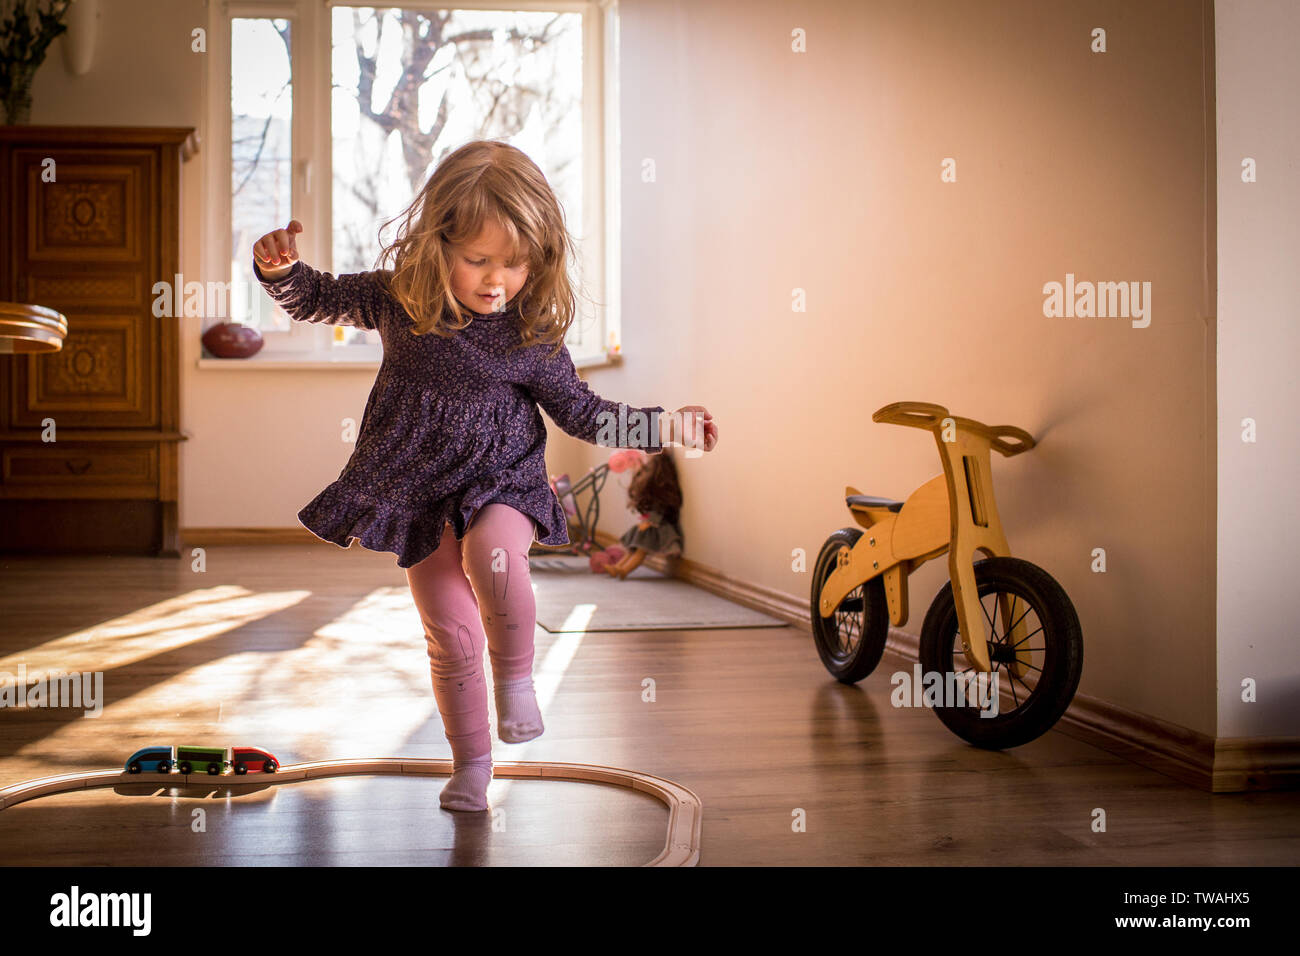 Happy, little child girl playing and dancing inside toy train tracks, in a sunlit room with window, having fun during her playtime Stock Photo